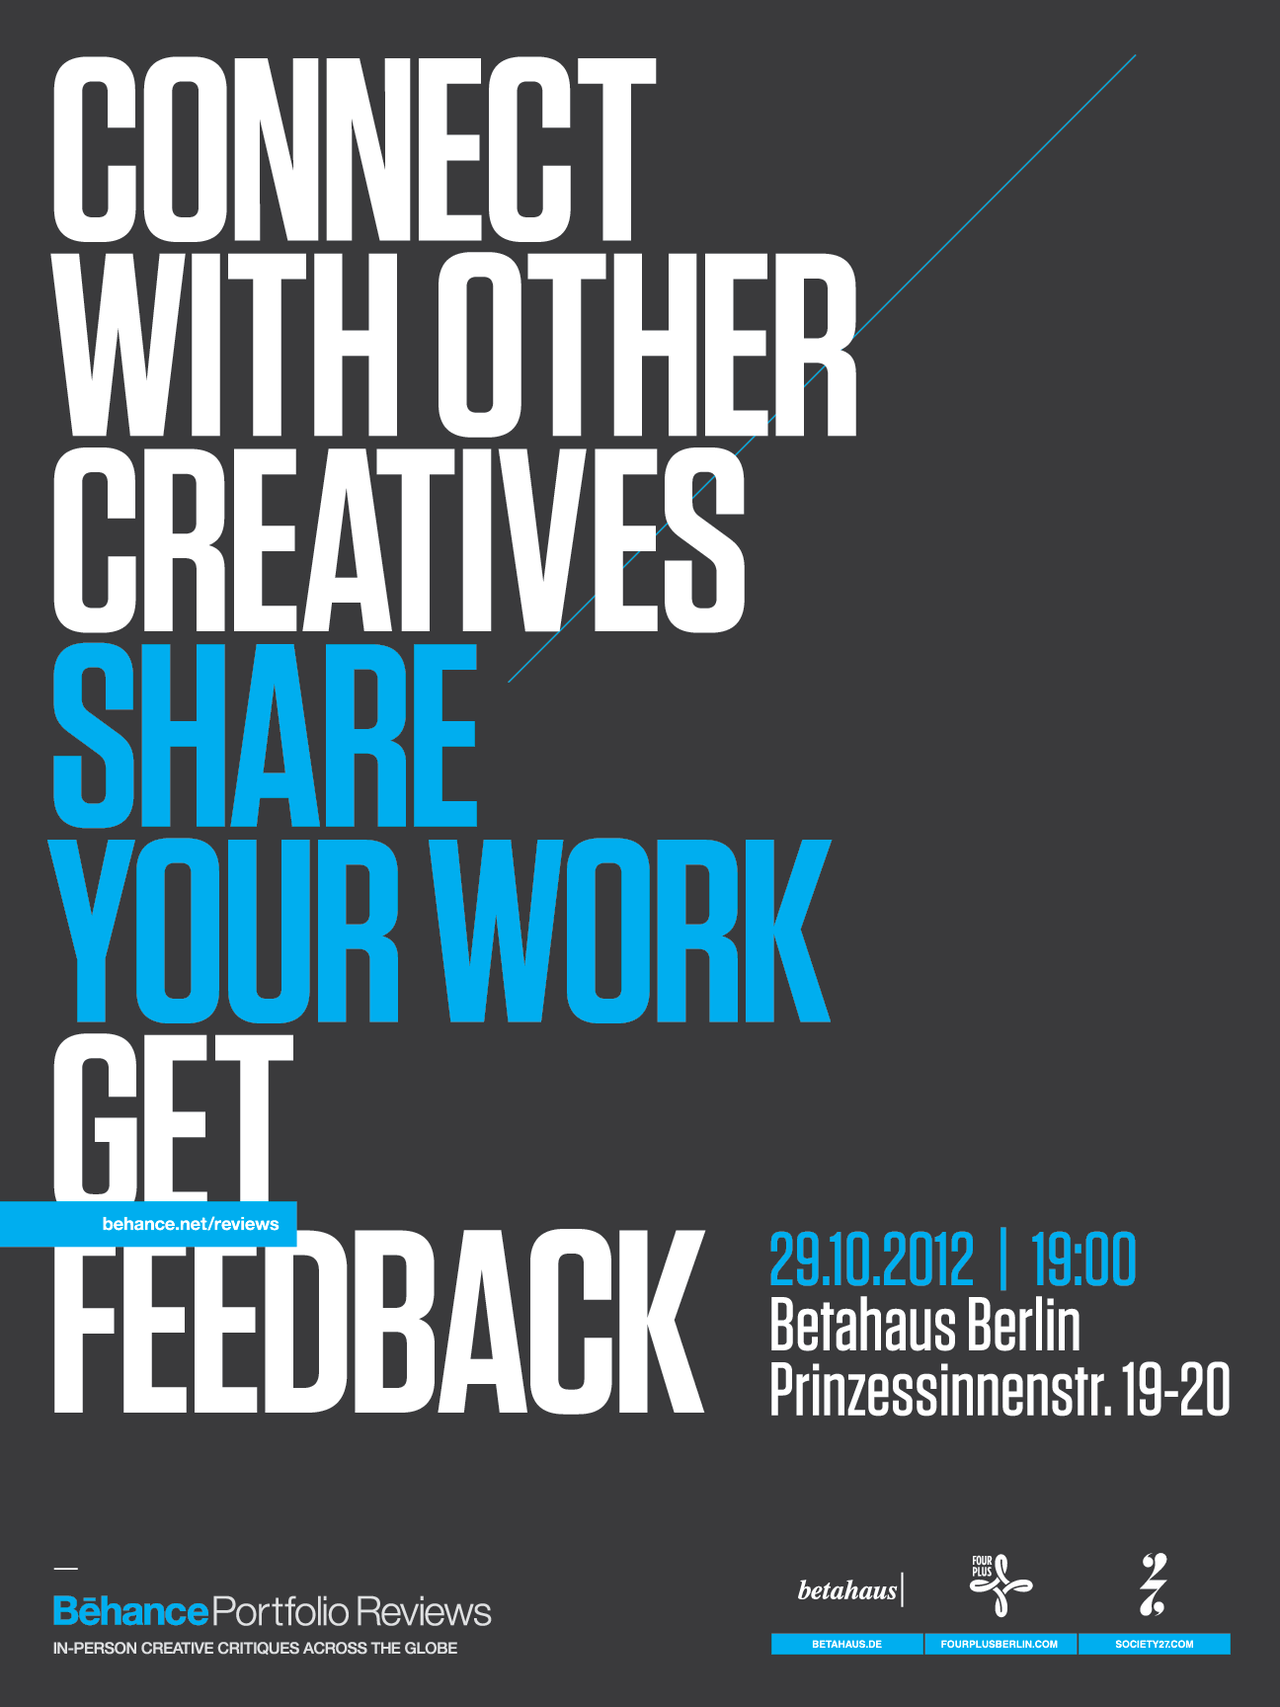 Reserve the date for a Behance Portfolio Review in Berlin organized by Society27. To joint the event and more info check the event pages on Facebook or Meetup.